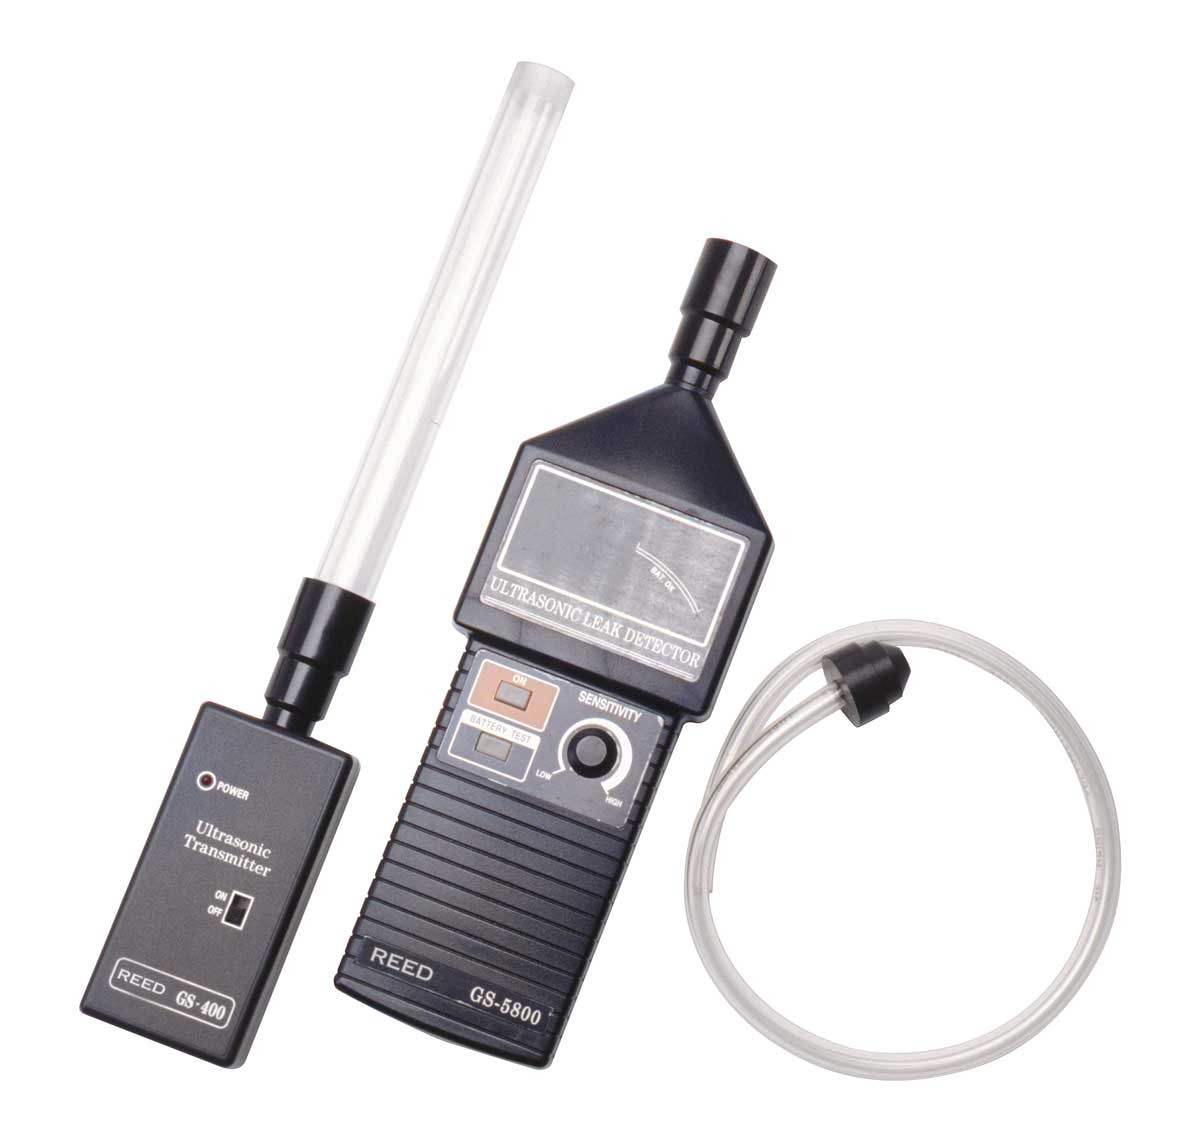 REED GS-5800 Ultrasonic Leak Detector-REED GS-5800 With Accessories